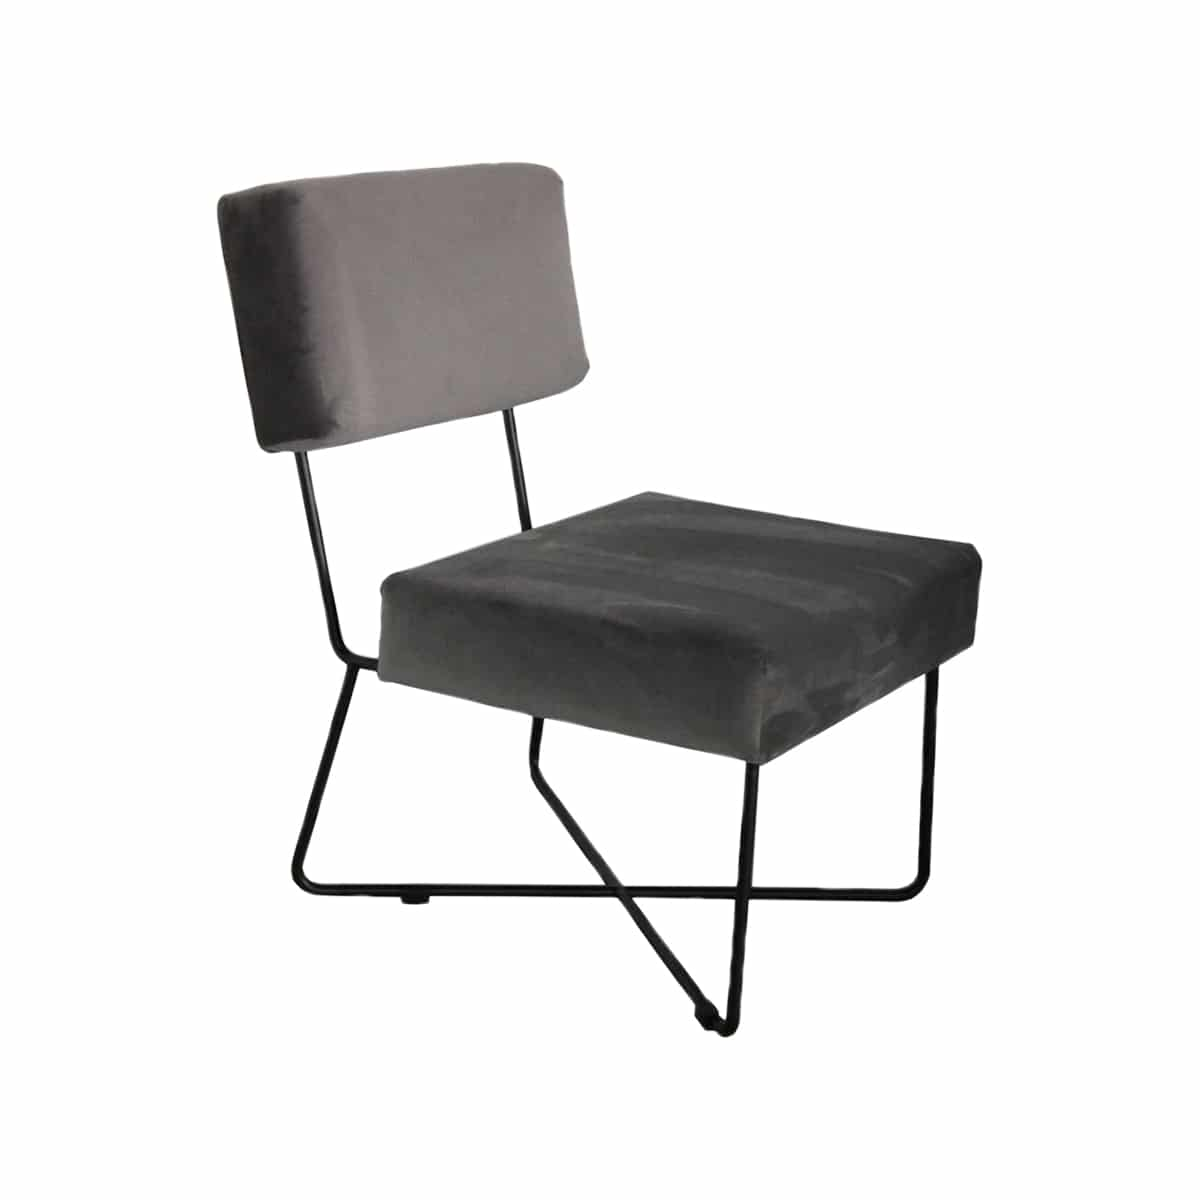 fauteuil kaline taupe hanjel en offre sp ciale sur zeeloft. Black Bedroom Furniture Sets. Home Design Ideas